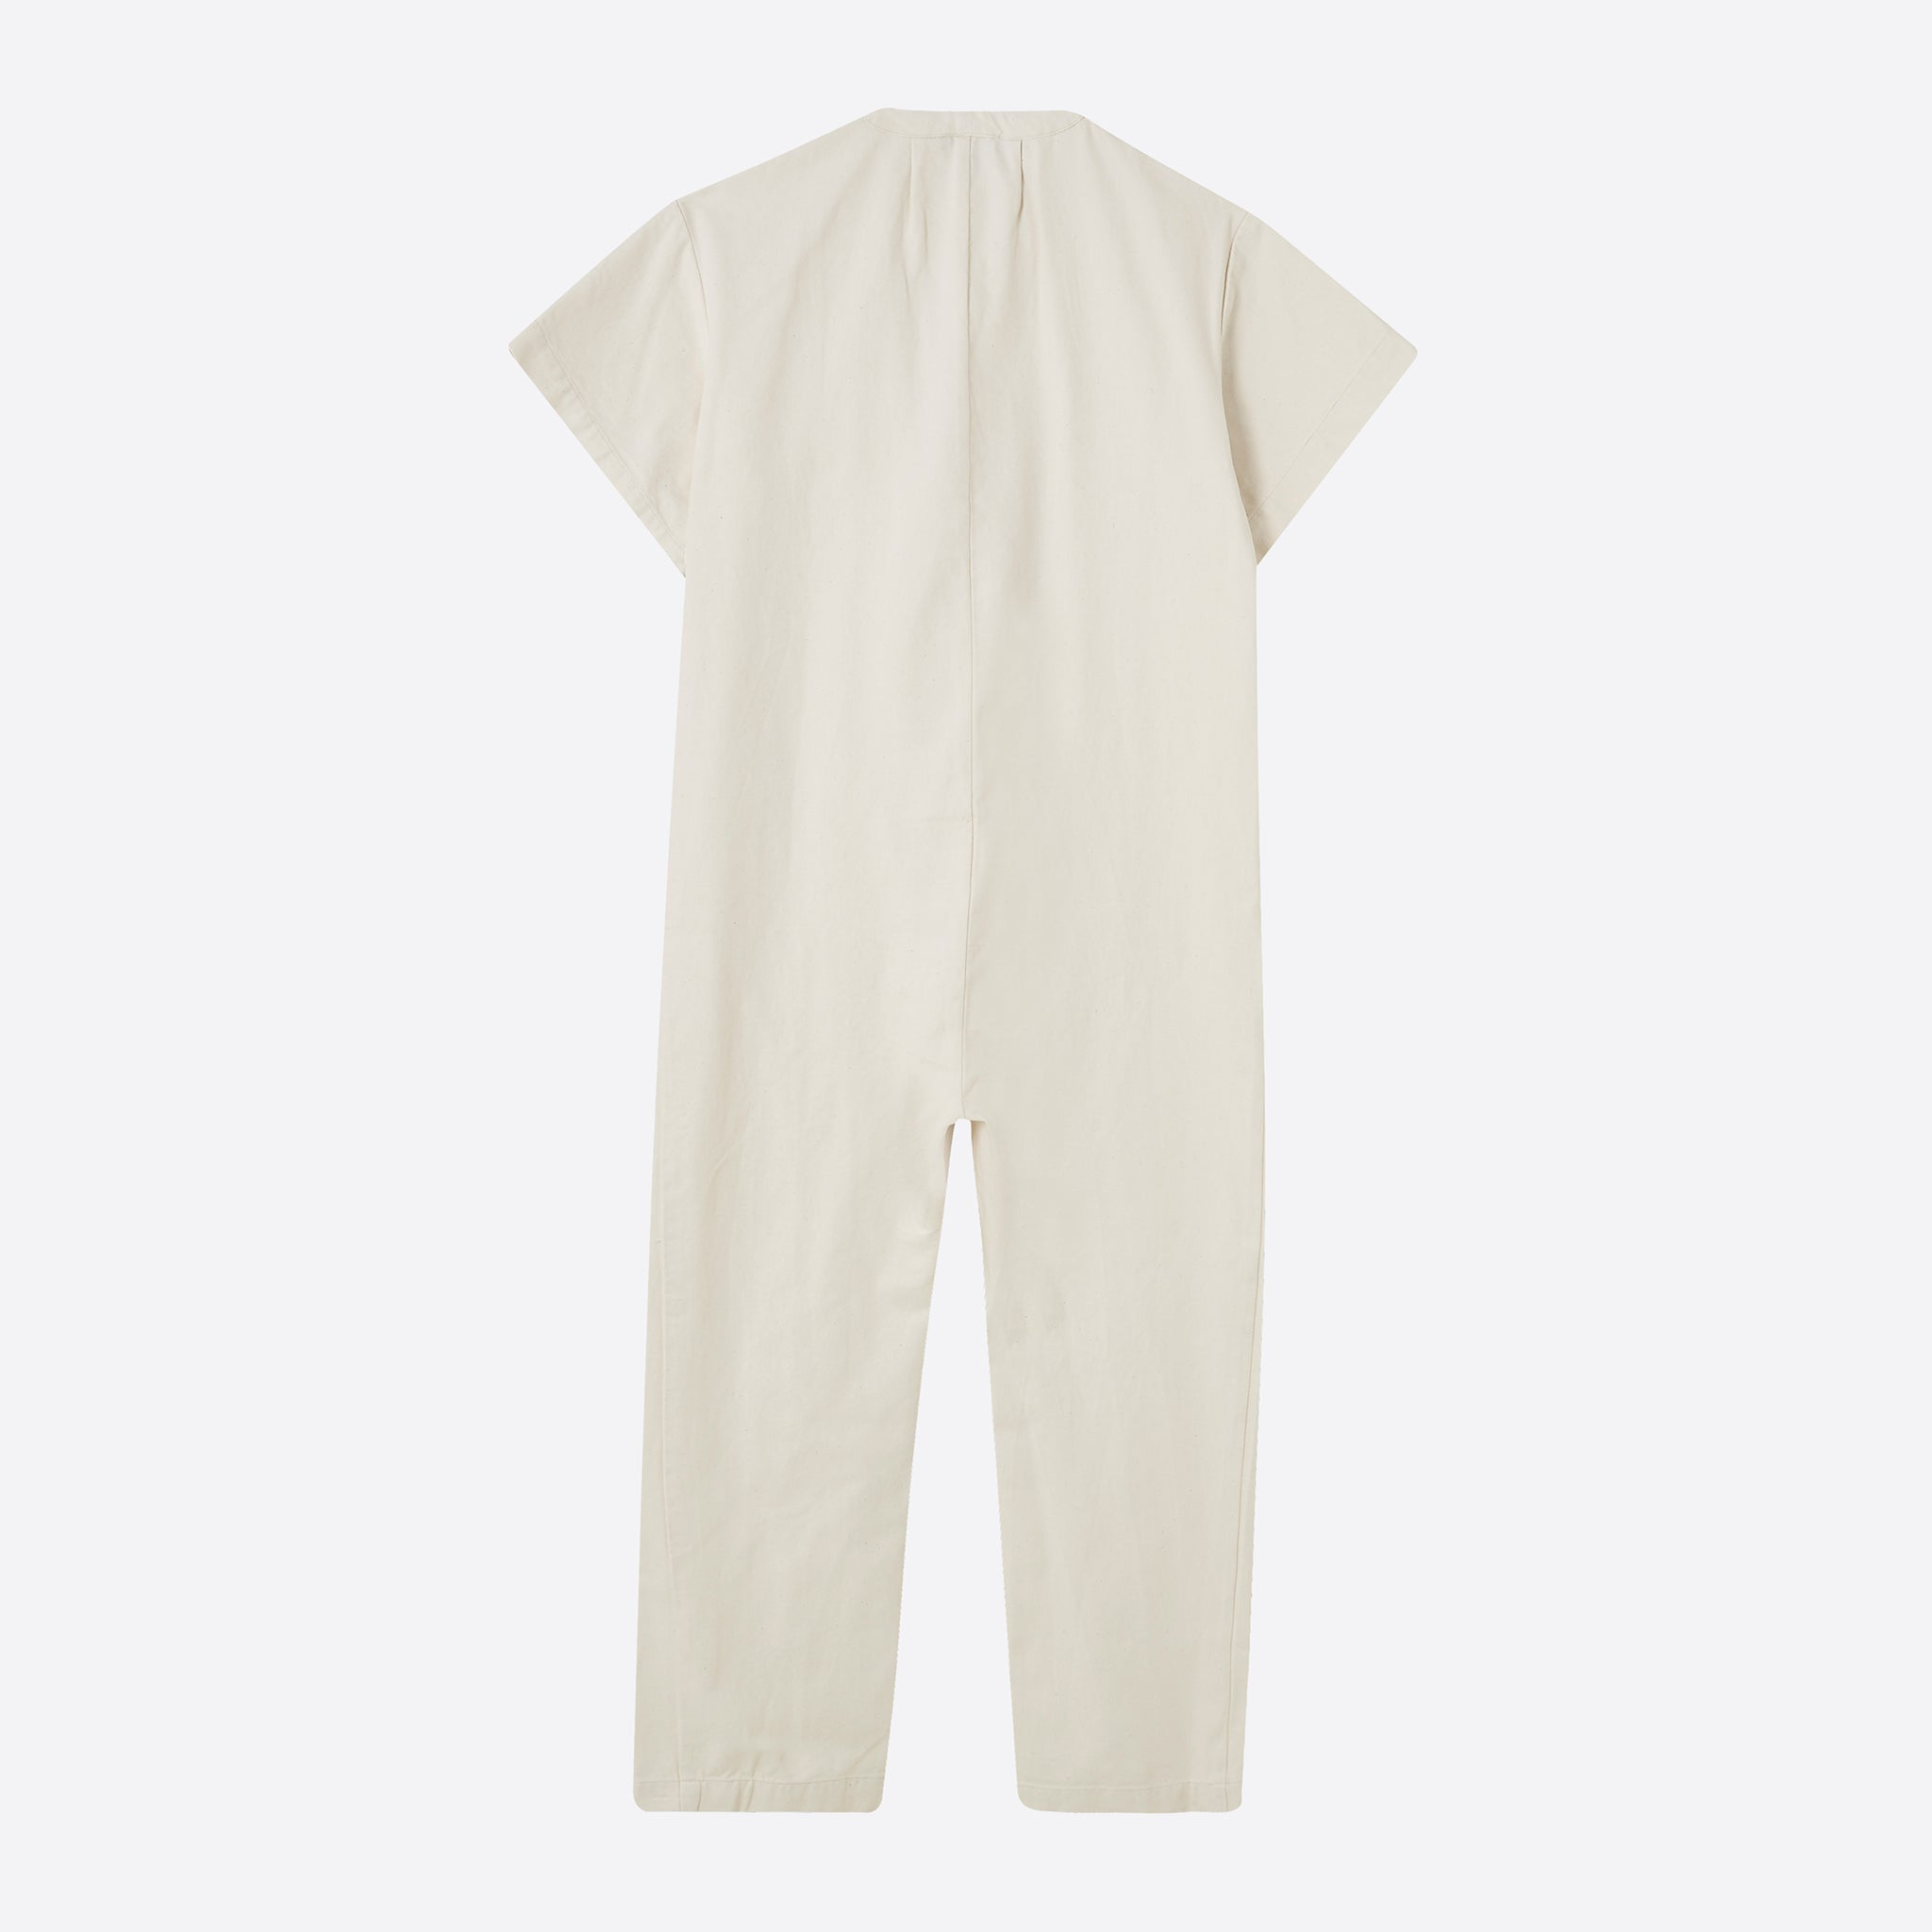 Ilana Kohn Henry Coverall in Natural